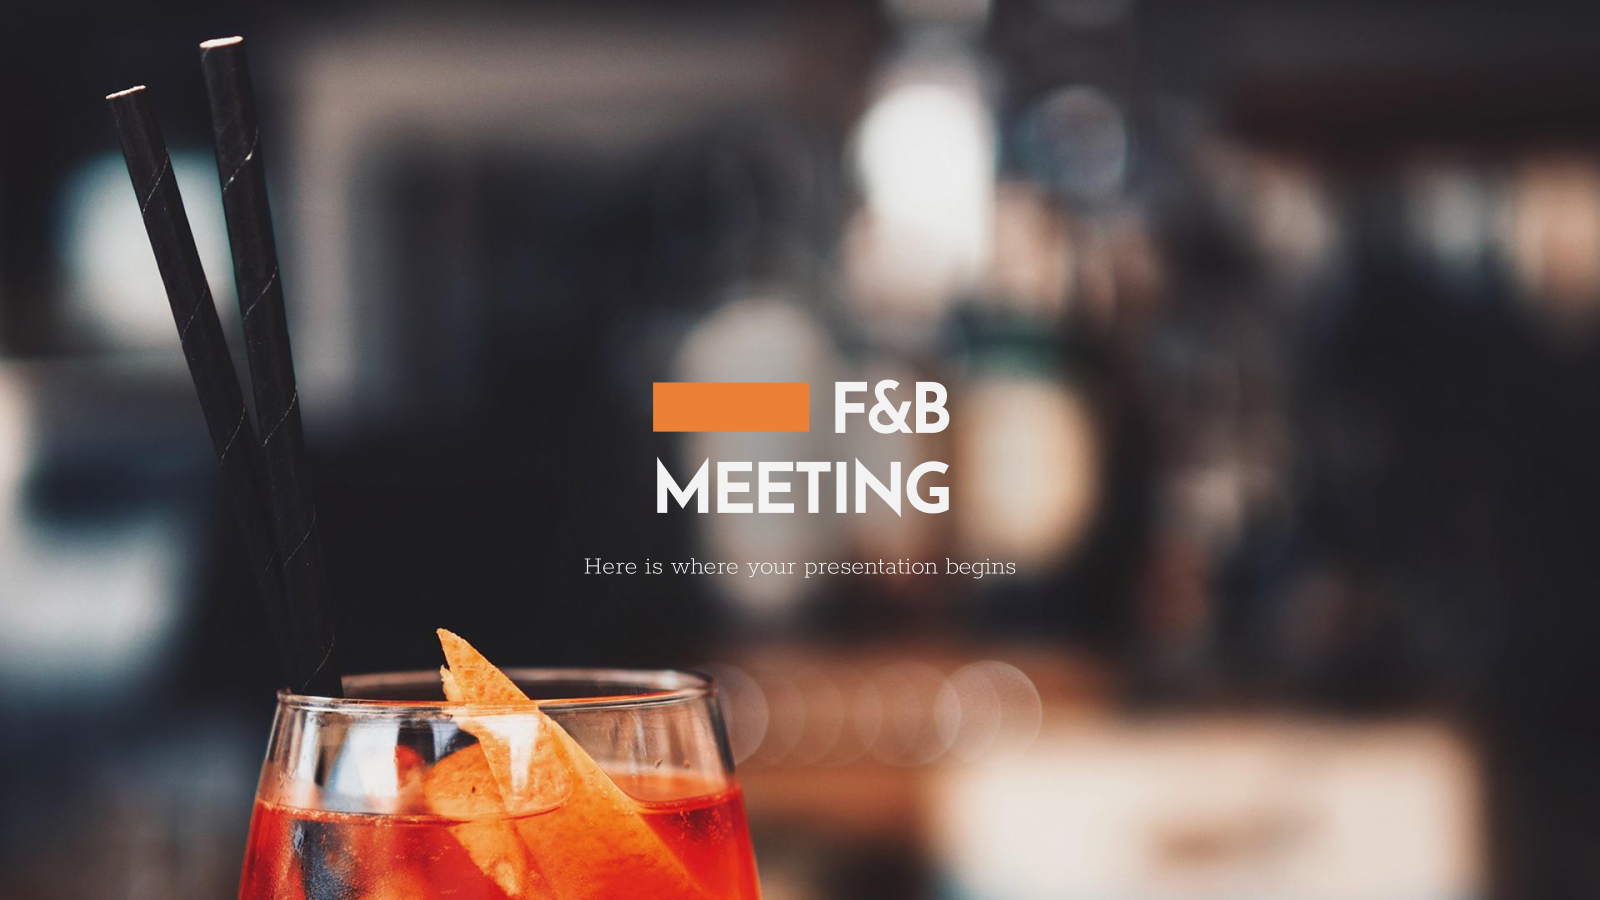 Food & Beverage Meeting presentation template